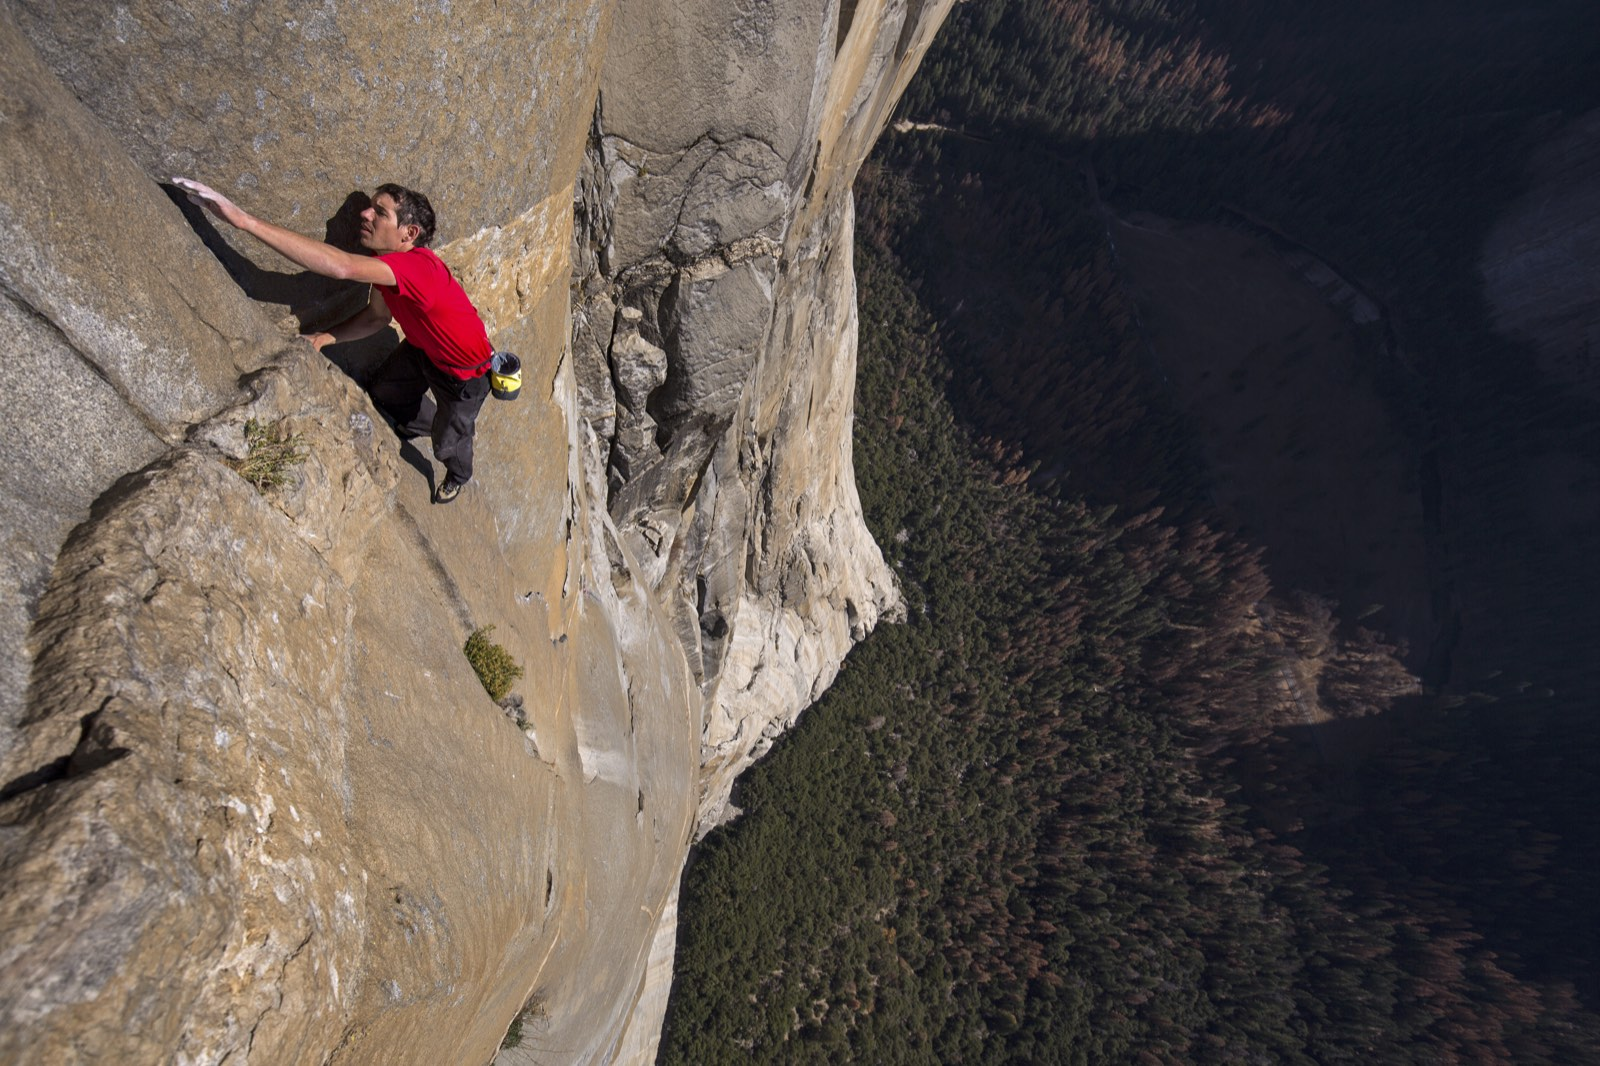 Stunning documentary Free Solo reaches global audiences